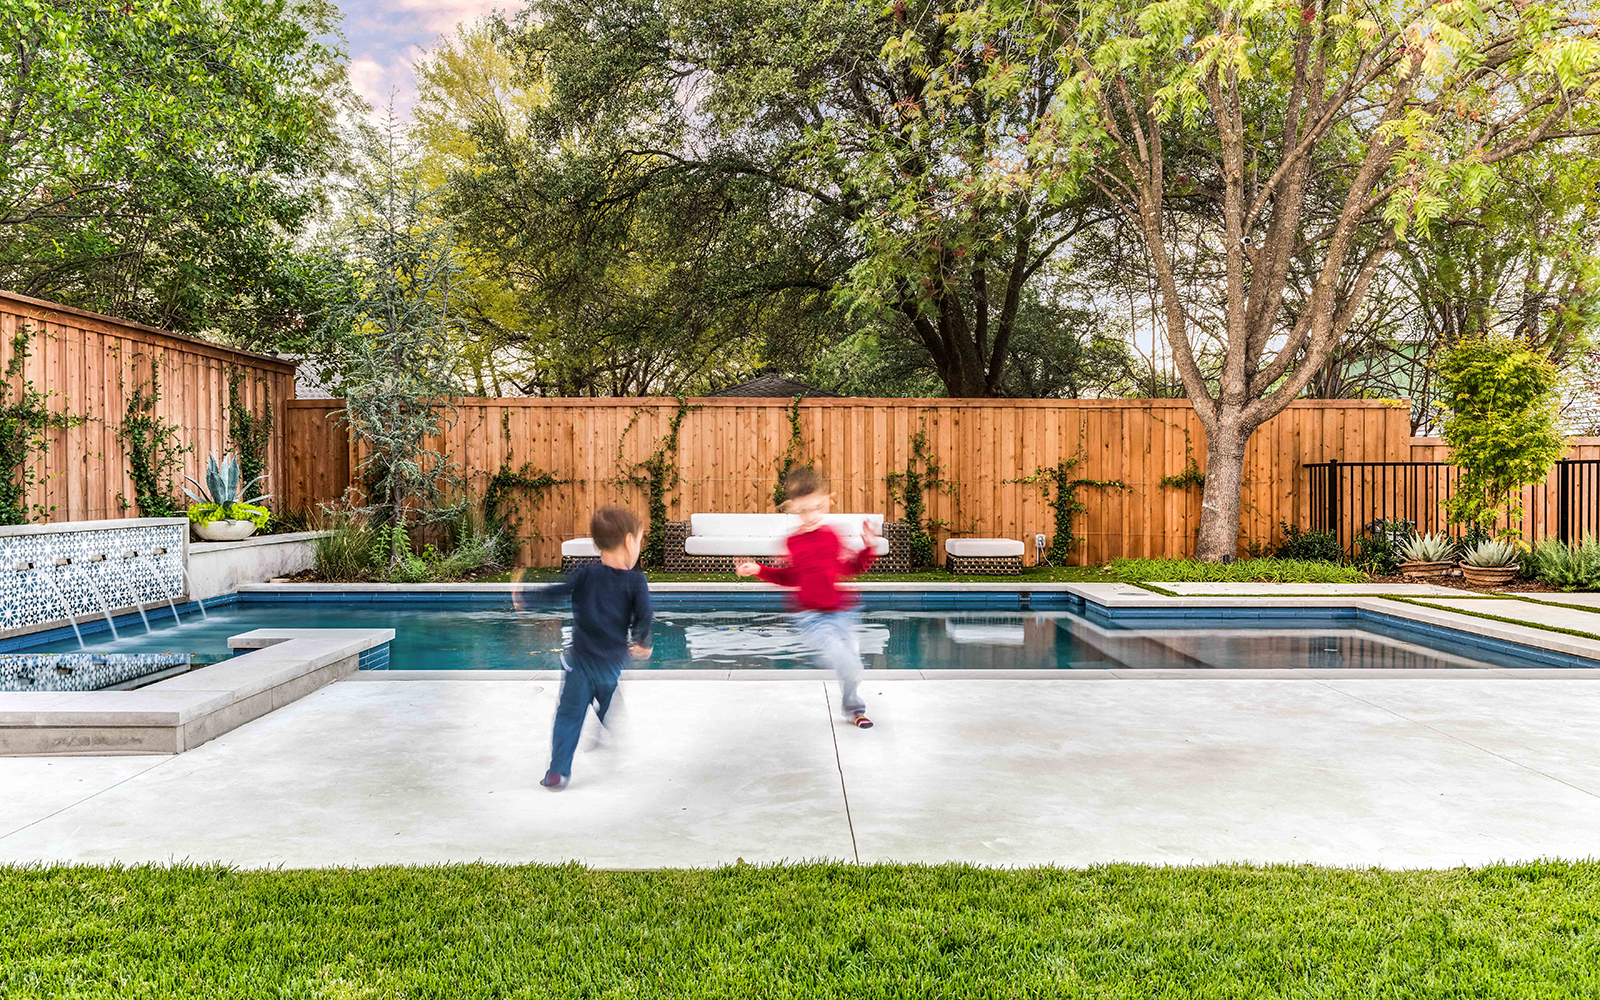 lakewood-pool-terrace-kids-running.jpg